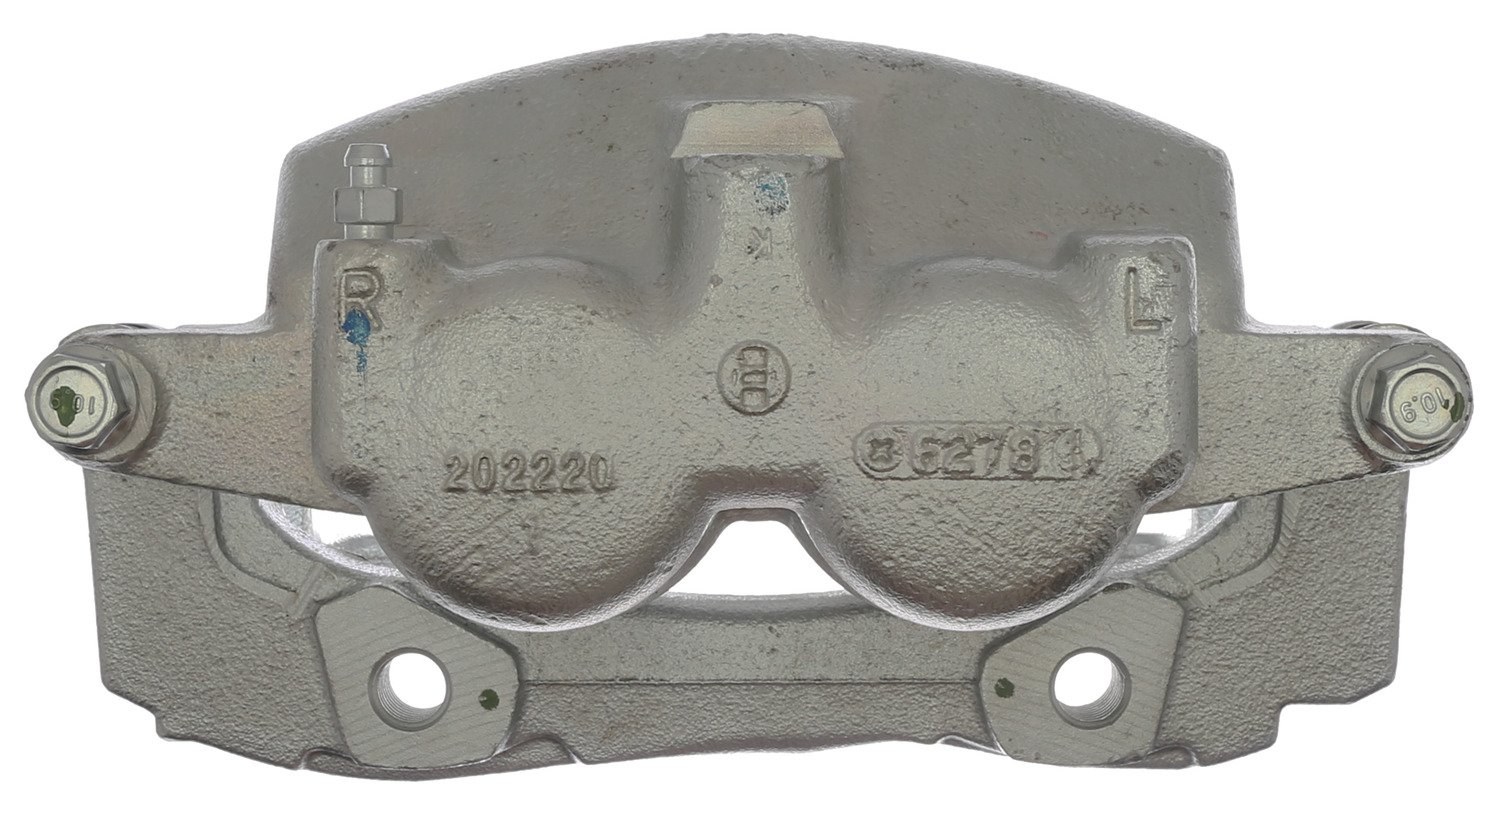 ACDelco 18FR2013C Professional Front Passenger Side Disc Brake Caliper Assembly without Pads (Friction Ready Coated), Remanufactured